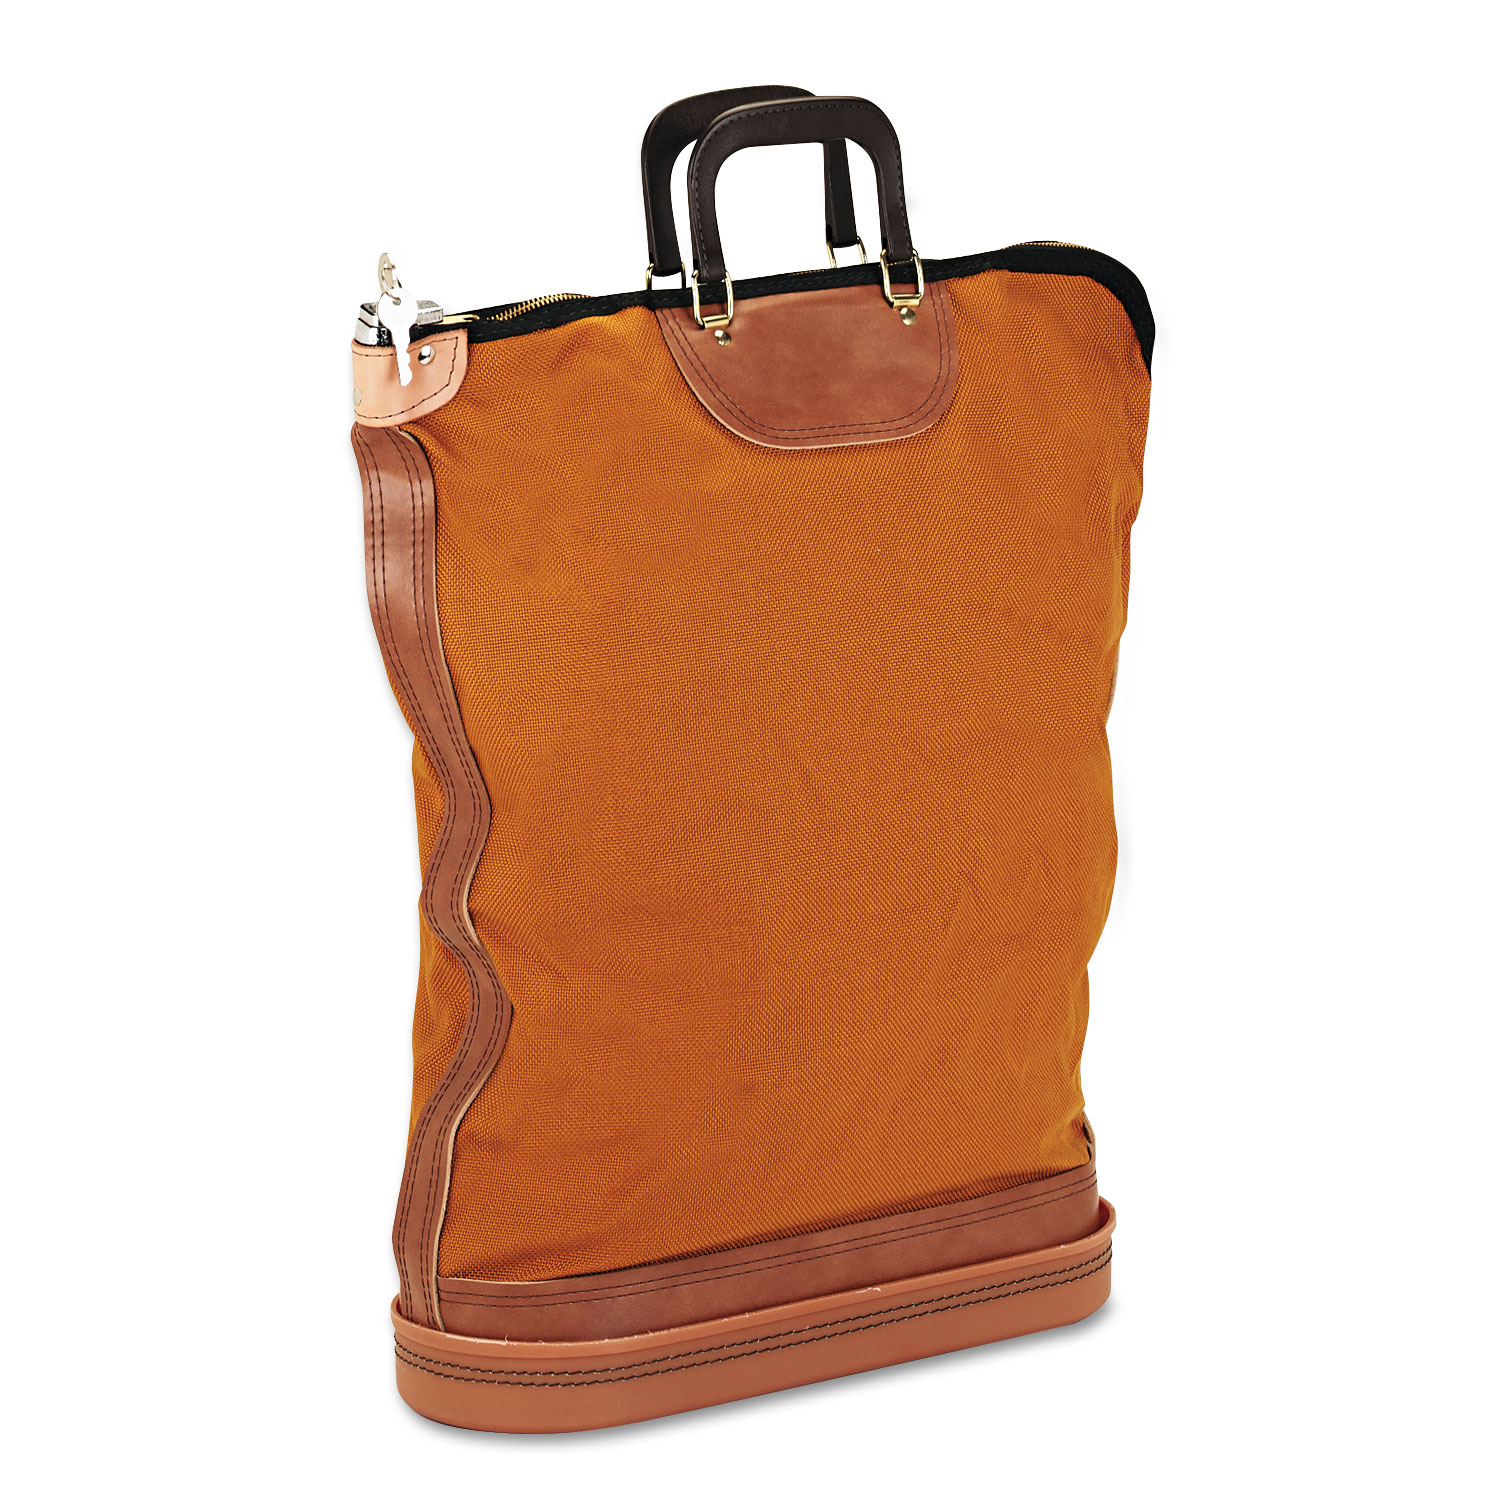 PM Nylon Security Mail Bag by PM COMPANY